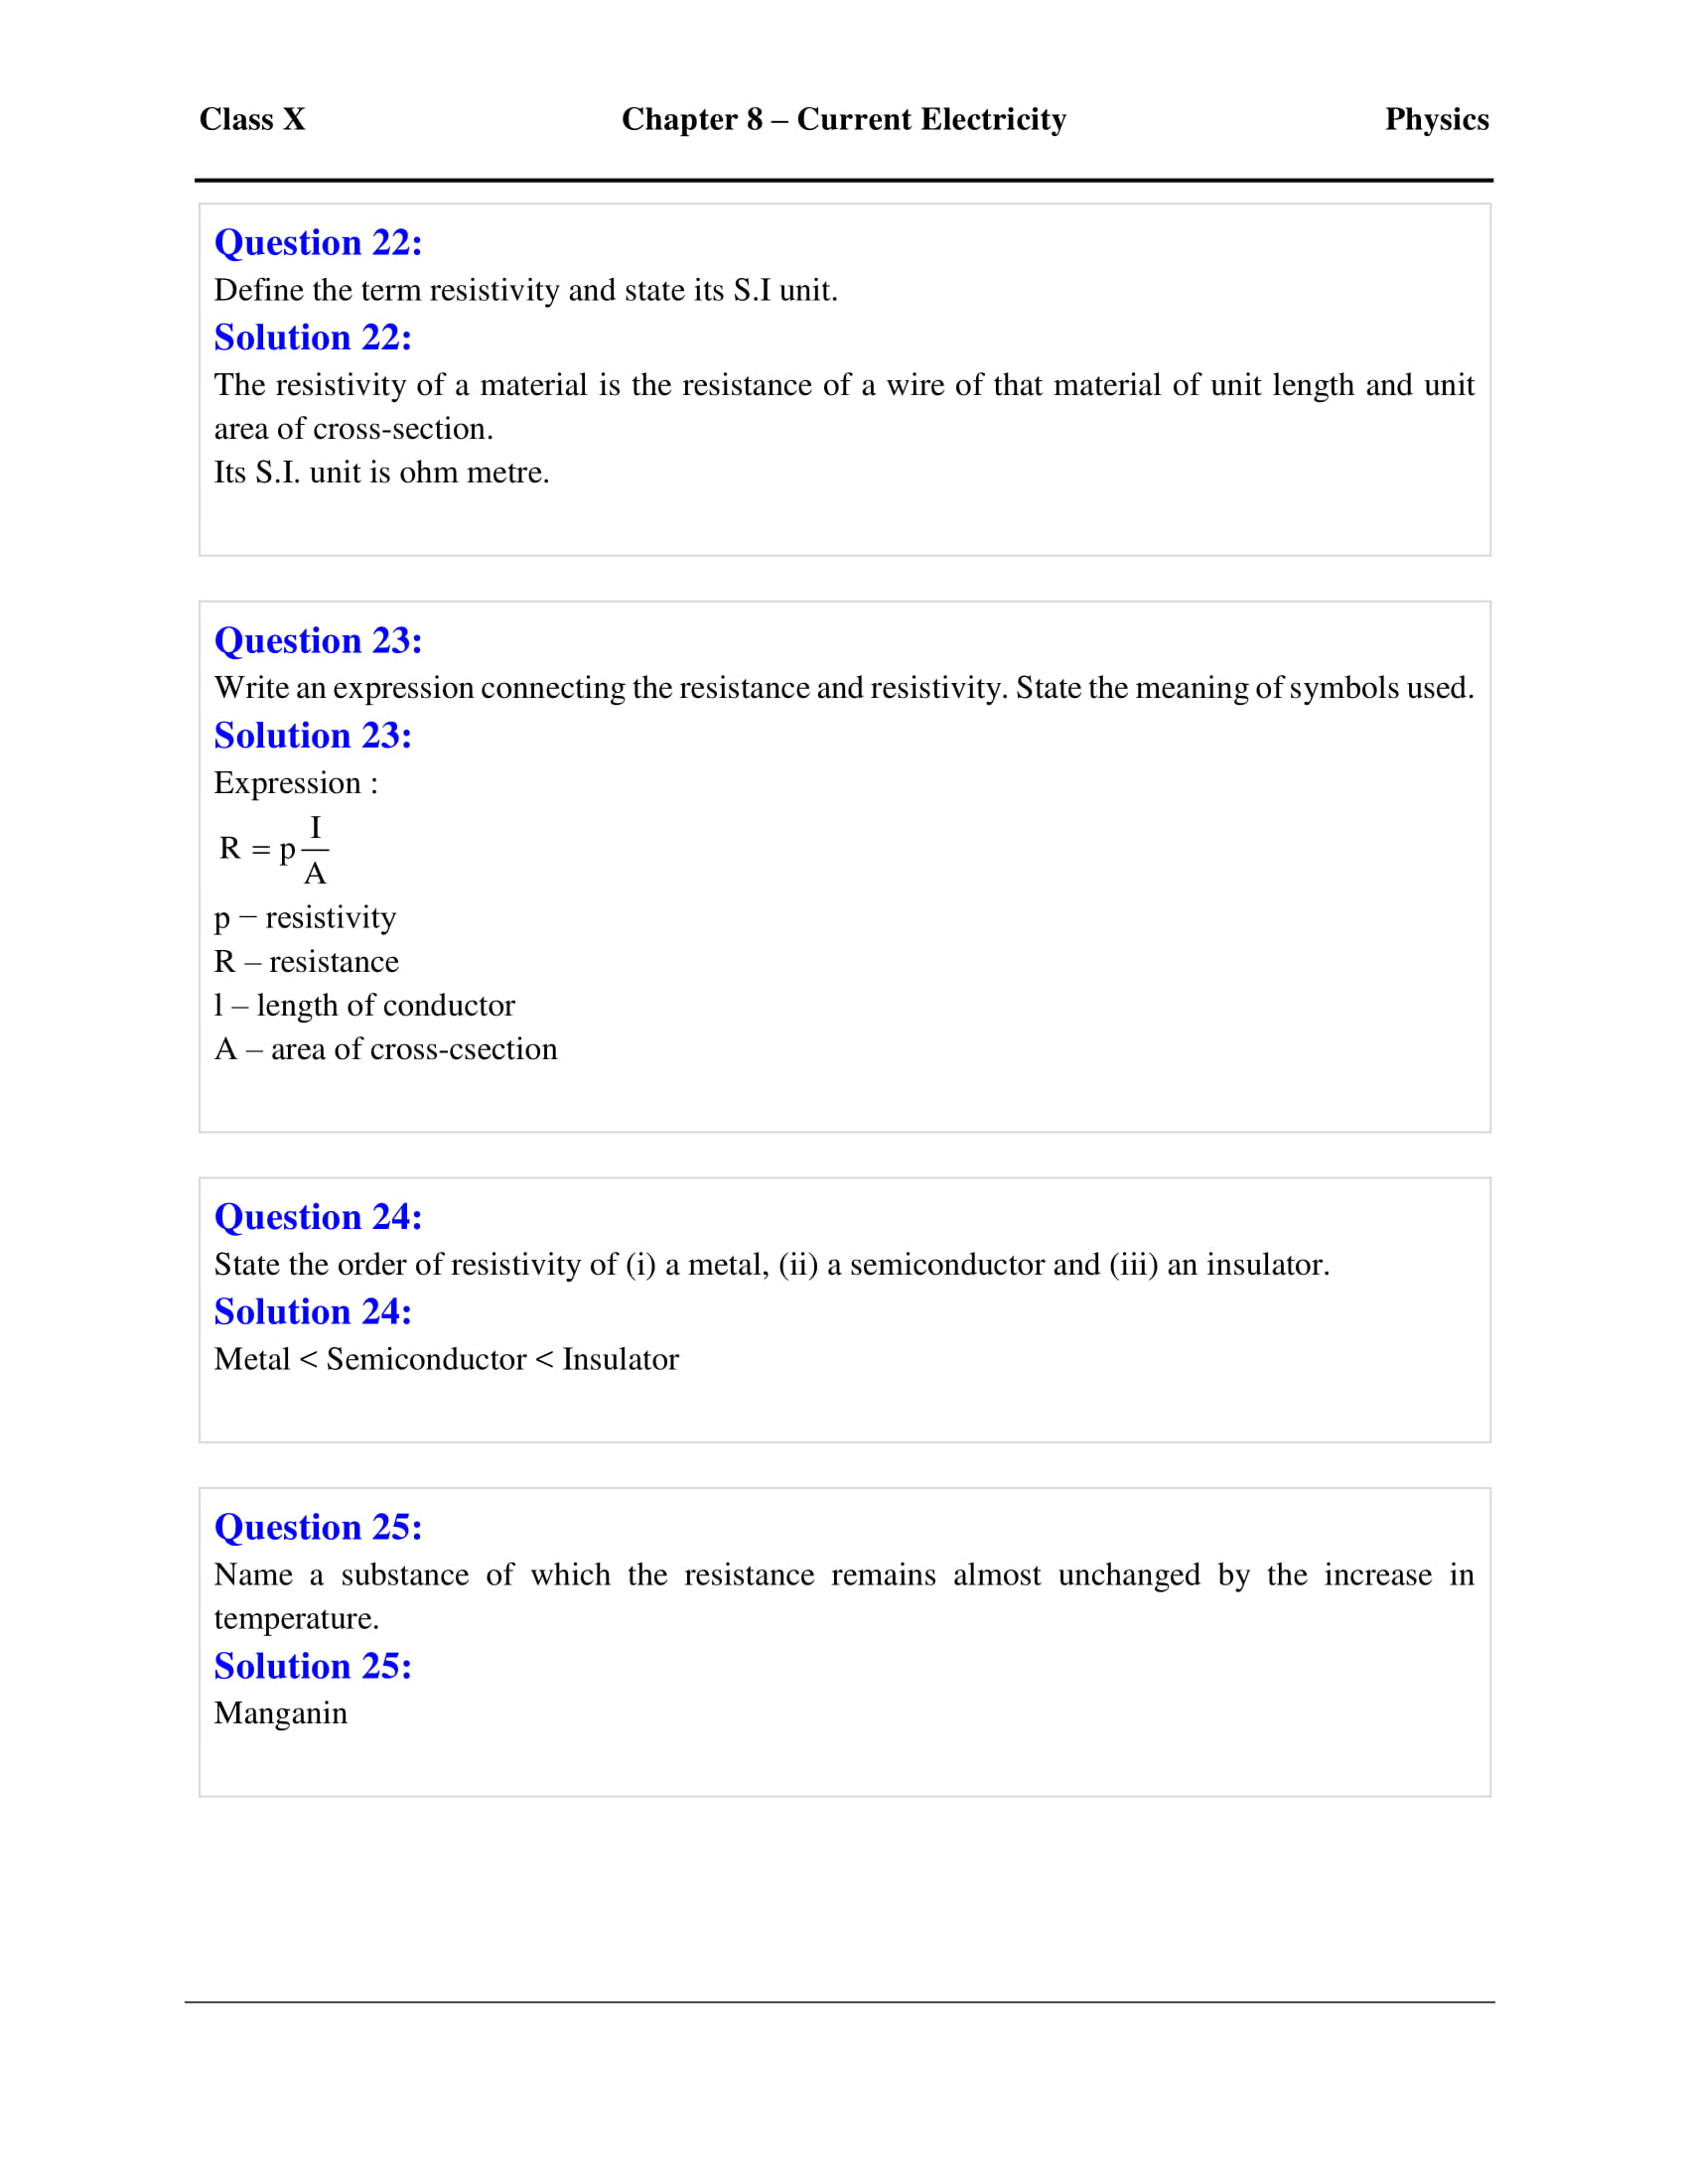 icse-selina-physics-solutions-class-10-chapter-8-current-electricity-08